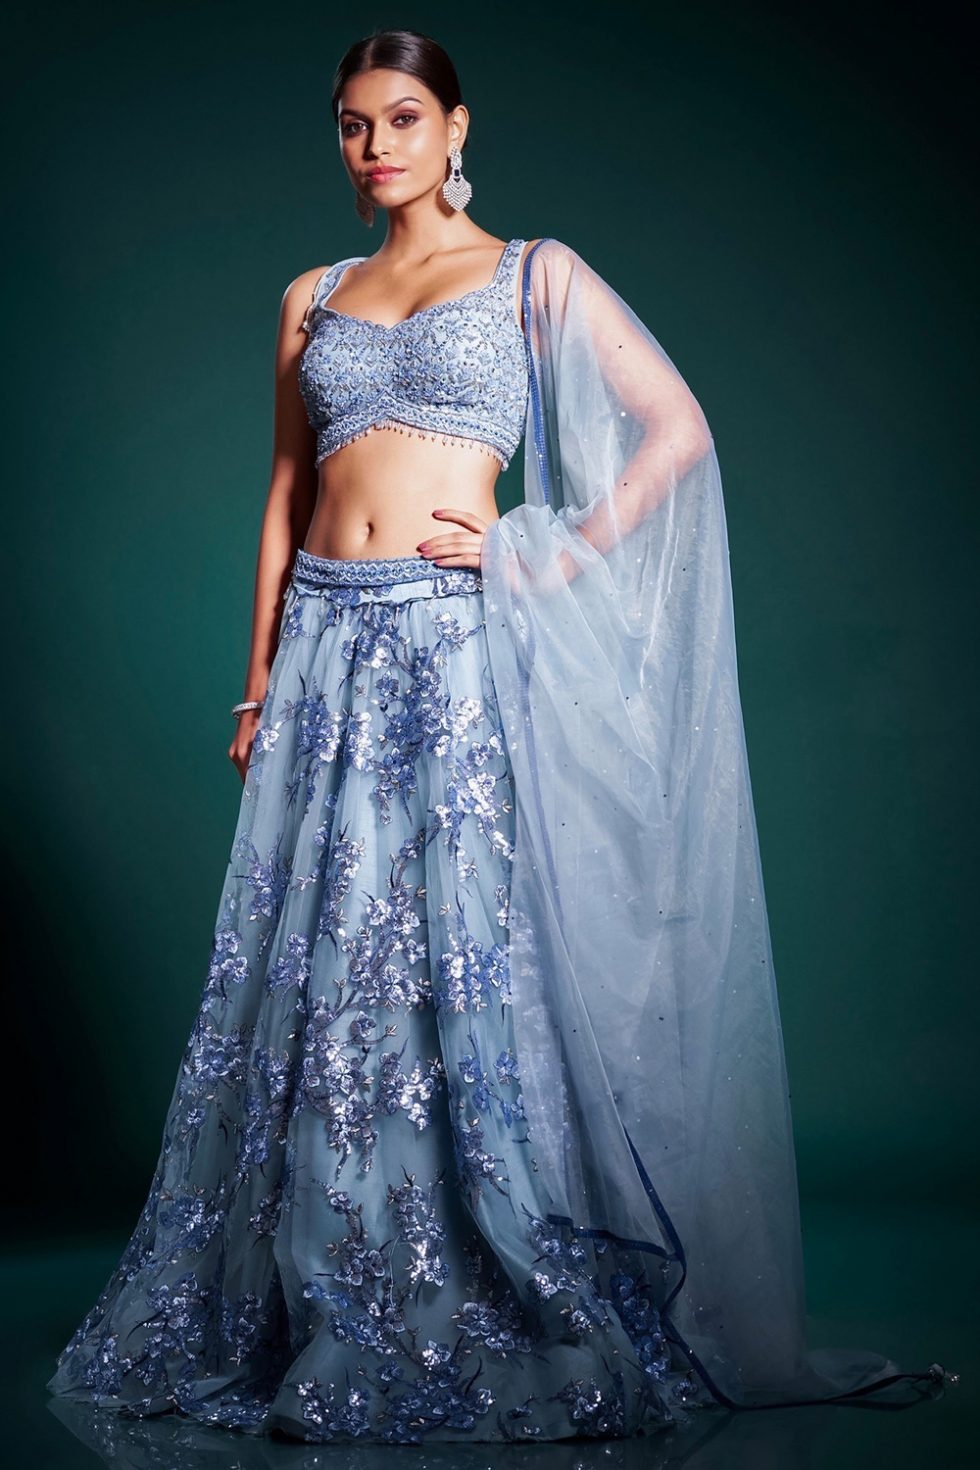 Ocean blue lehenga set with a hand embroidered blouse and a lace sequin work skirt paired with a matching dupatta and tassels